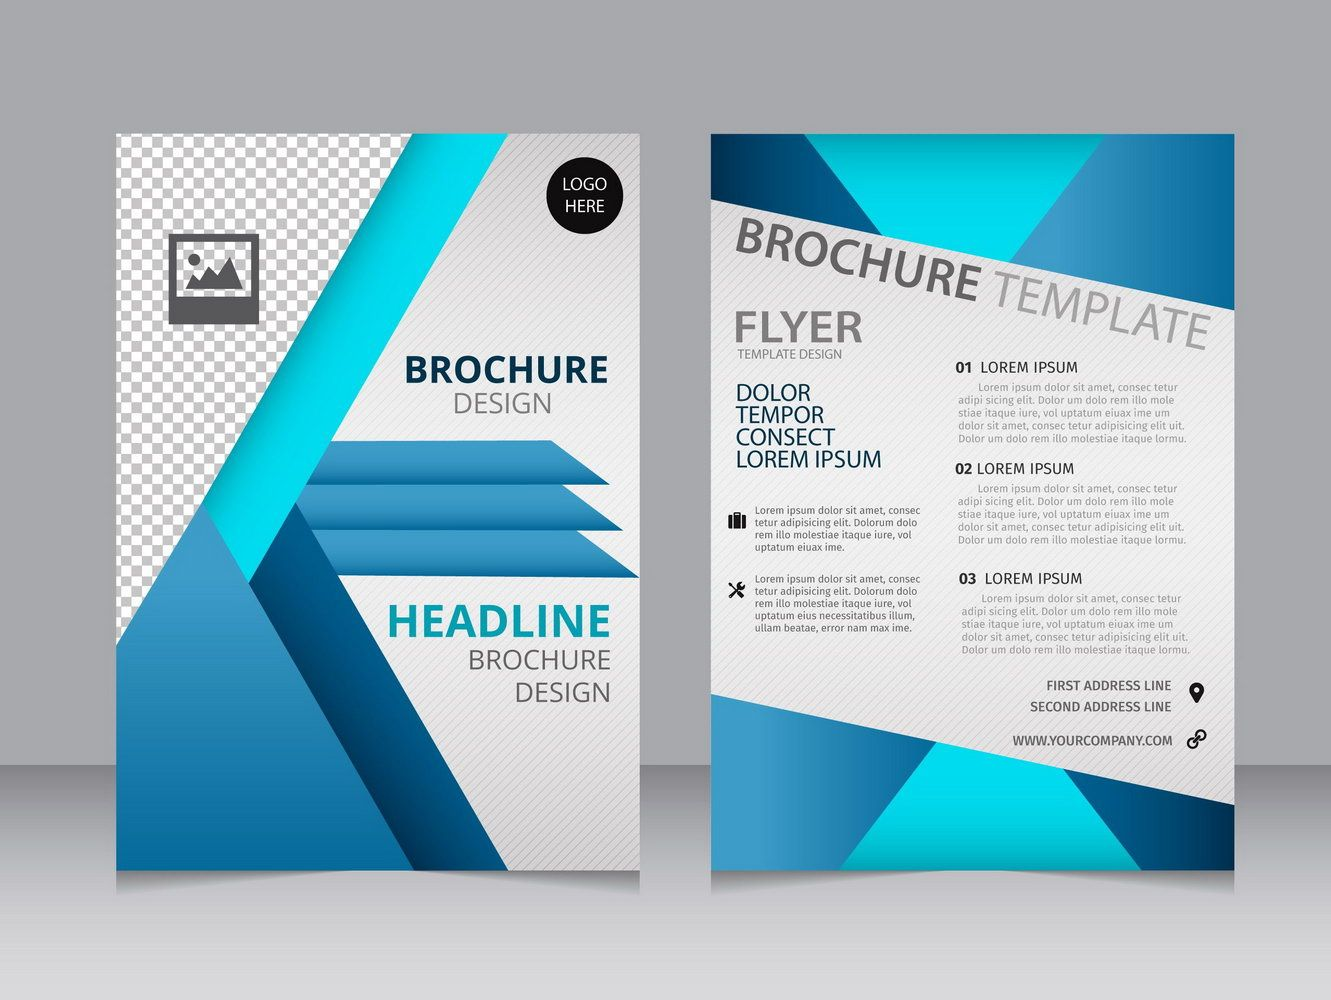 The Marvellous 005 Blank Brochure Templates Free Download Word Template Intended For In 2020 Free Brochure Template Brochure Templates Free Download Pamphlet Template